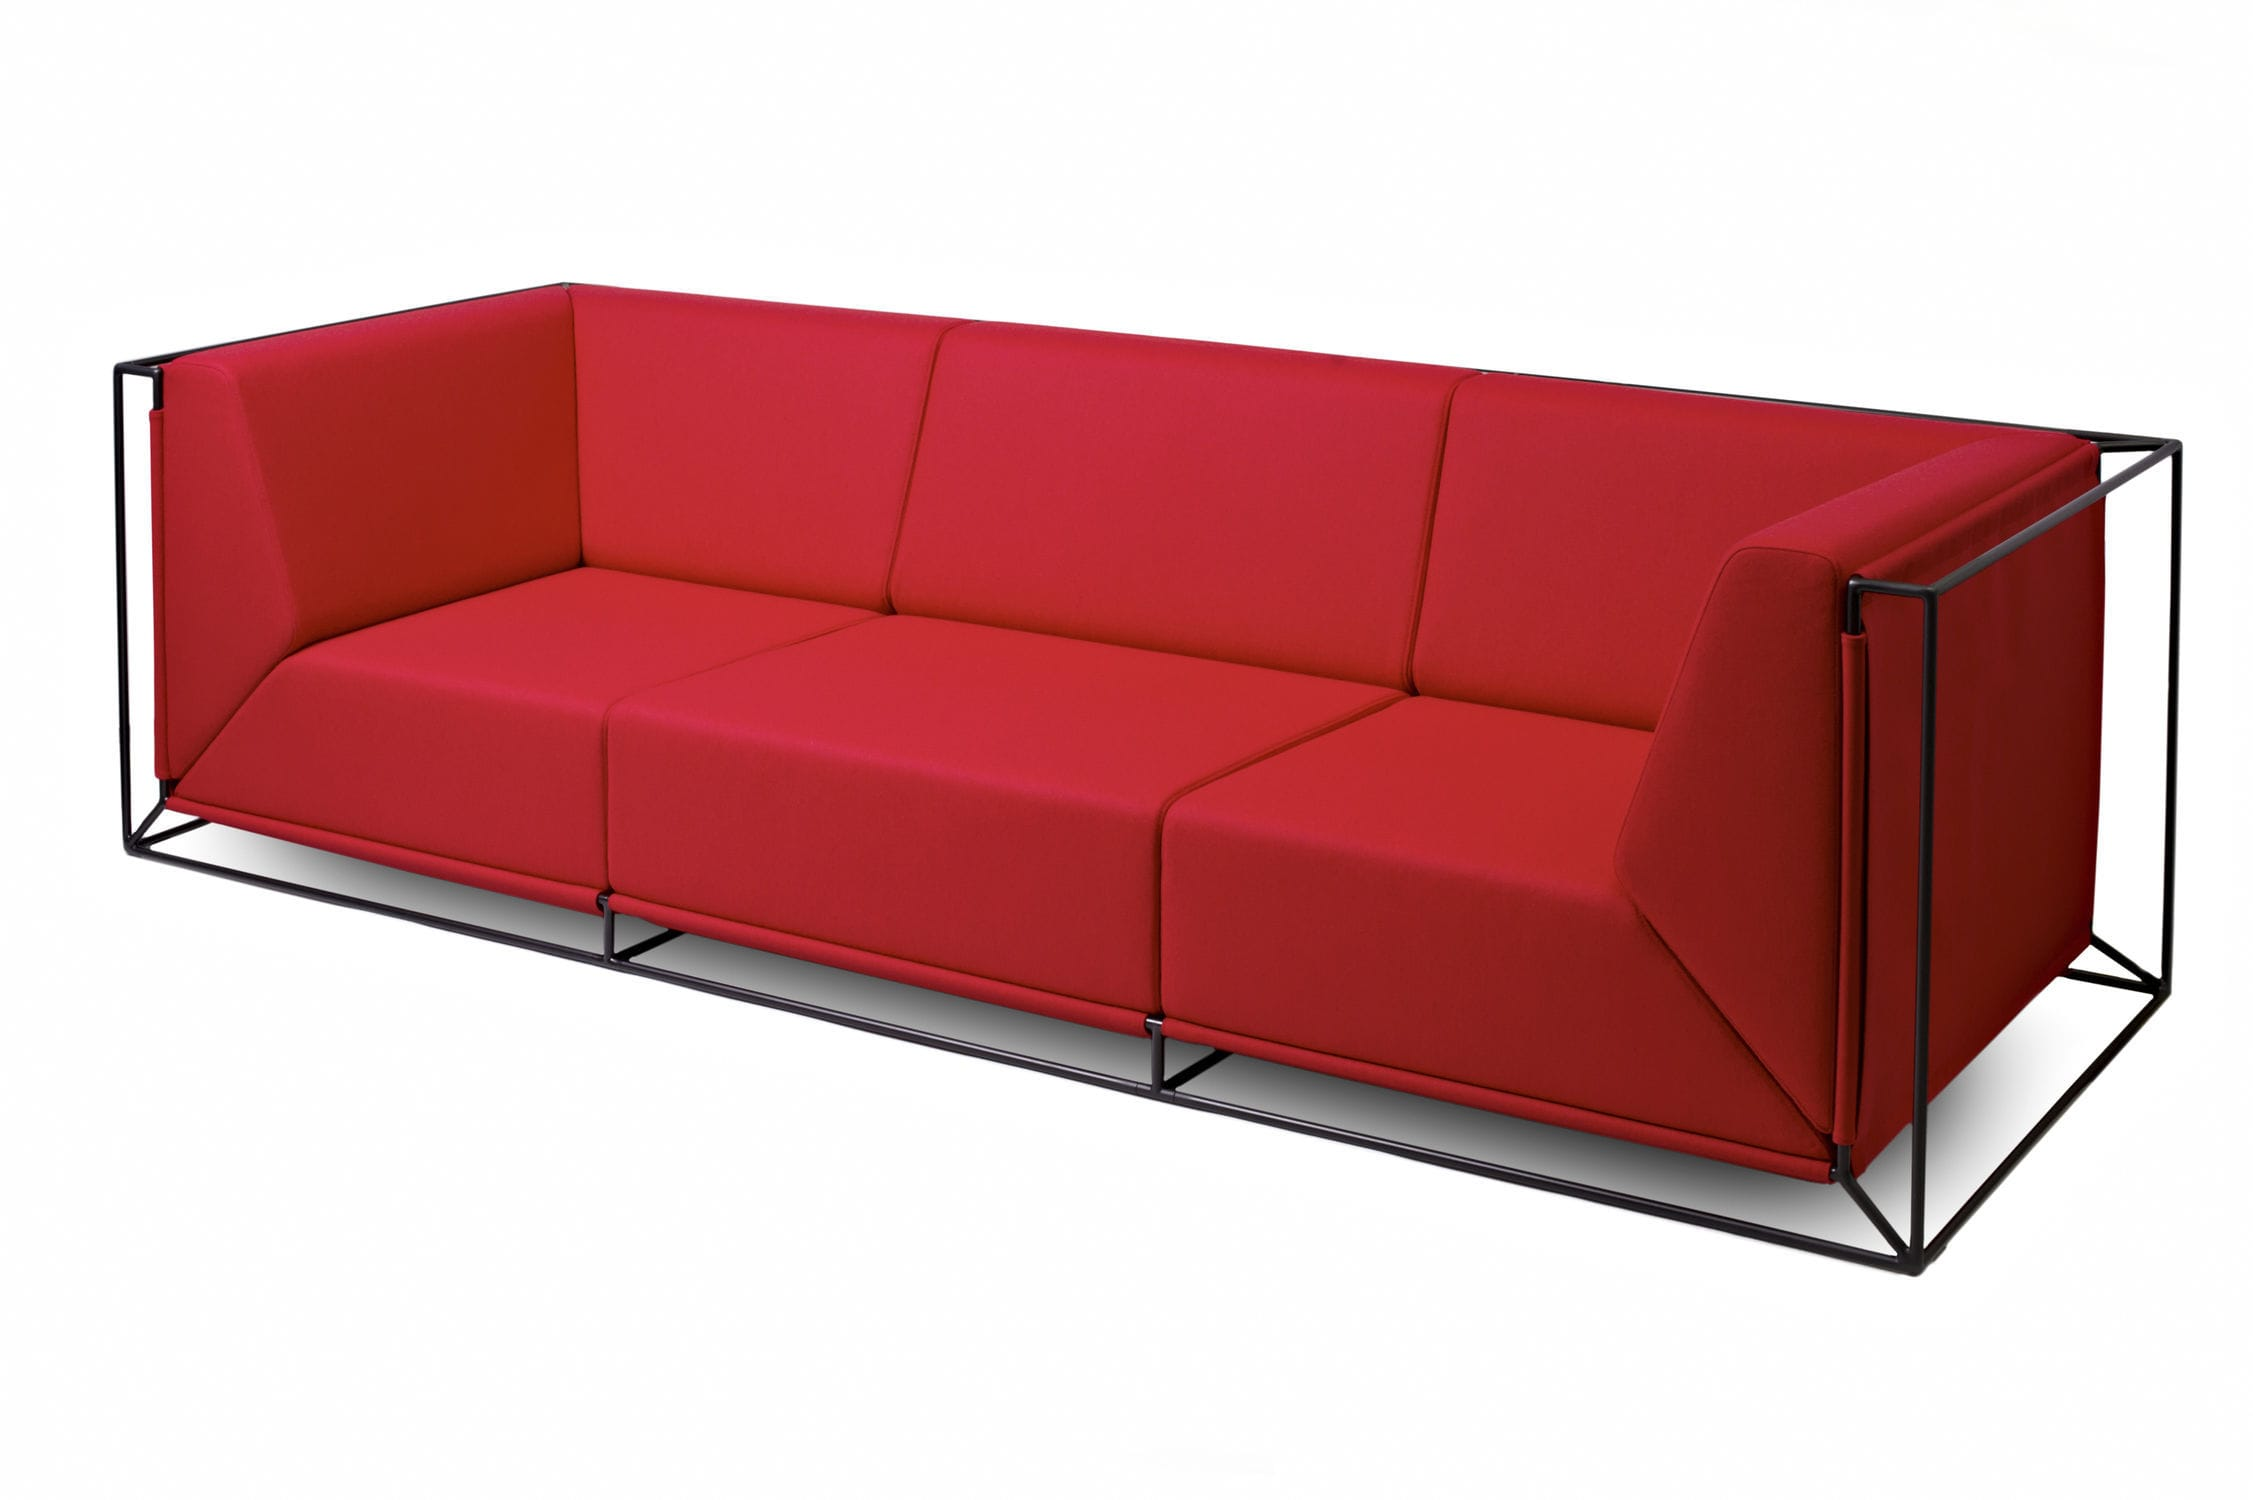 Lovely ... Sofá Modular / Moderno / De Tejido / De Philippe Nigro FLOATING  Comforty ... Idea